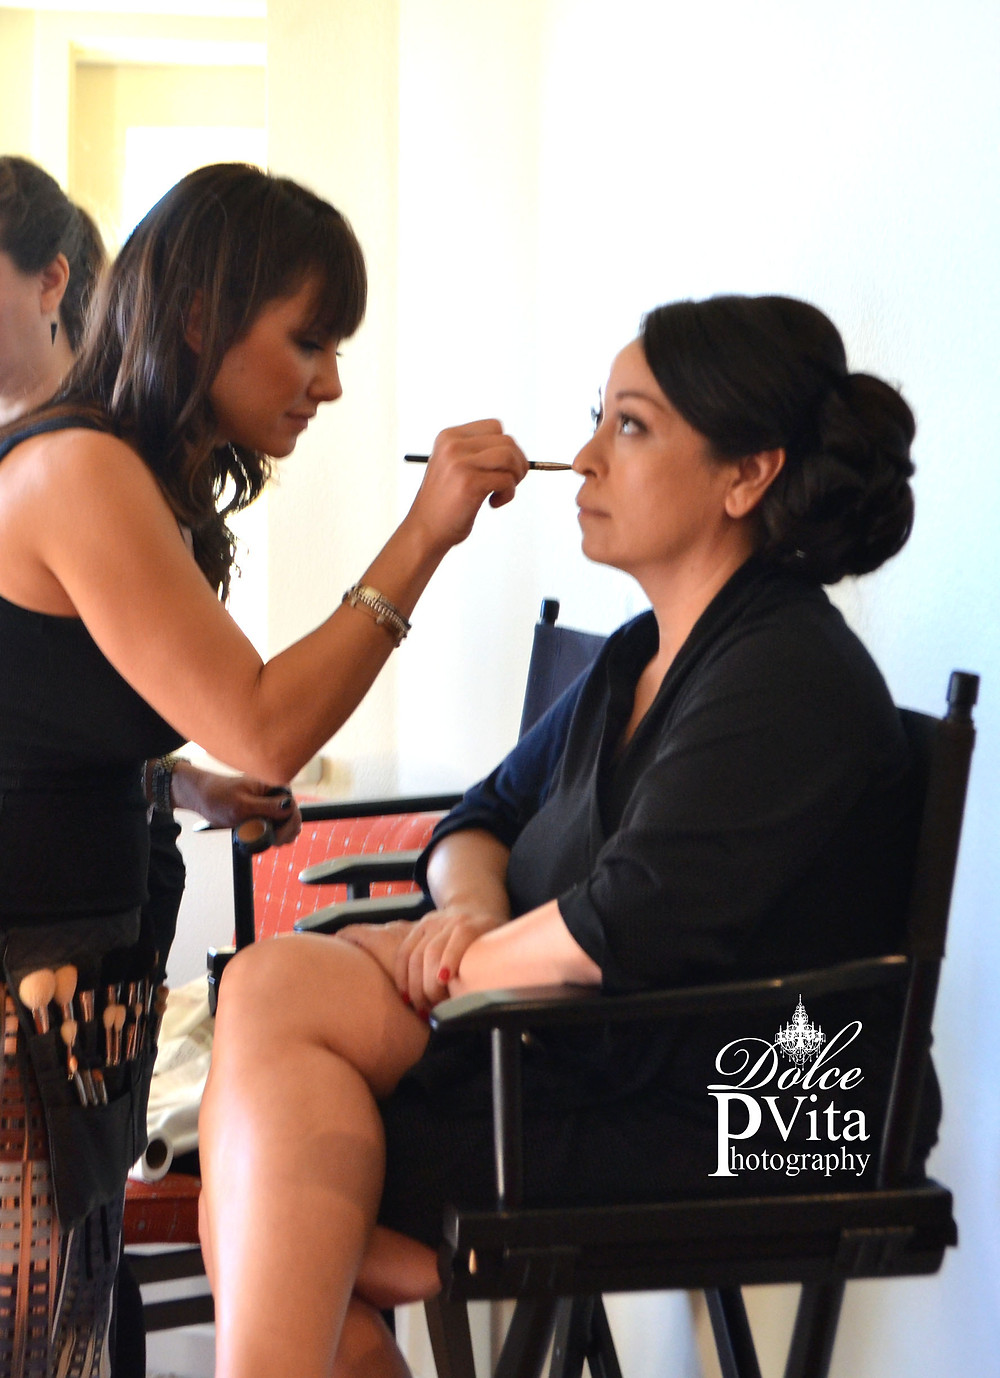 Dolce Vita Events Photography BTS on location Bridal Make up